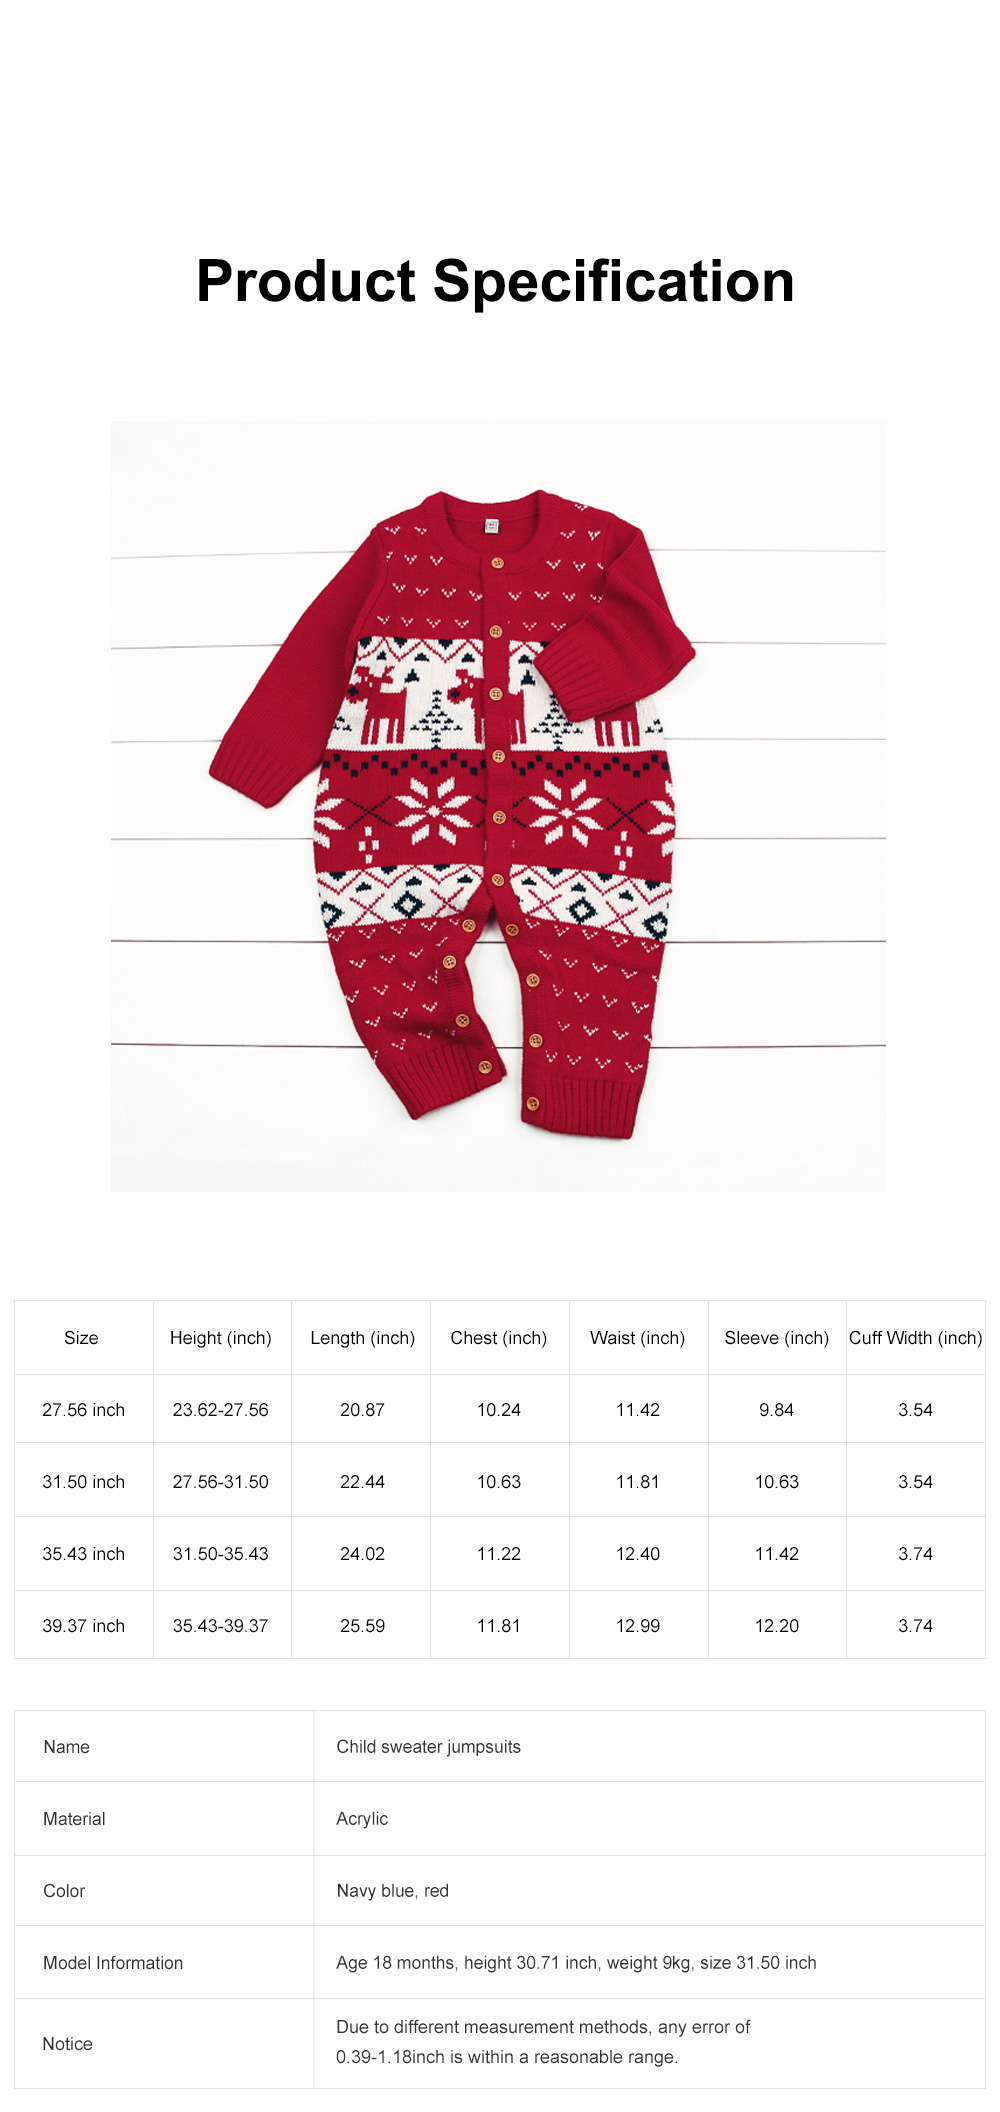 Baby Cartoon Christmas New Year Sweater One-pieces Jumpsuits for 1-3 Years Boy Girl Children Infants 6